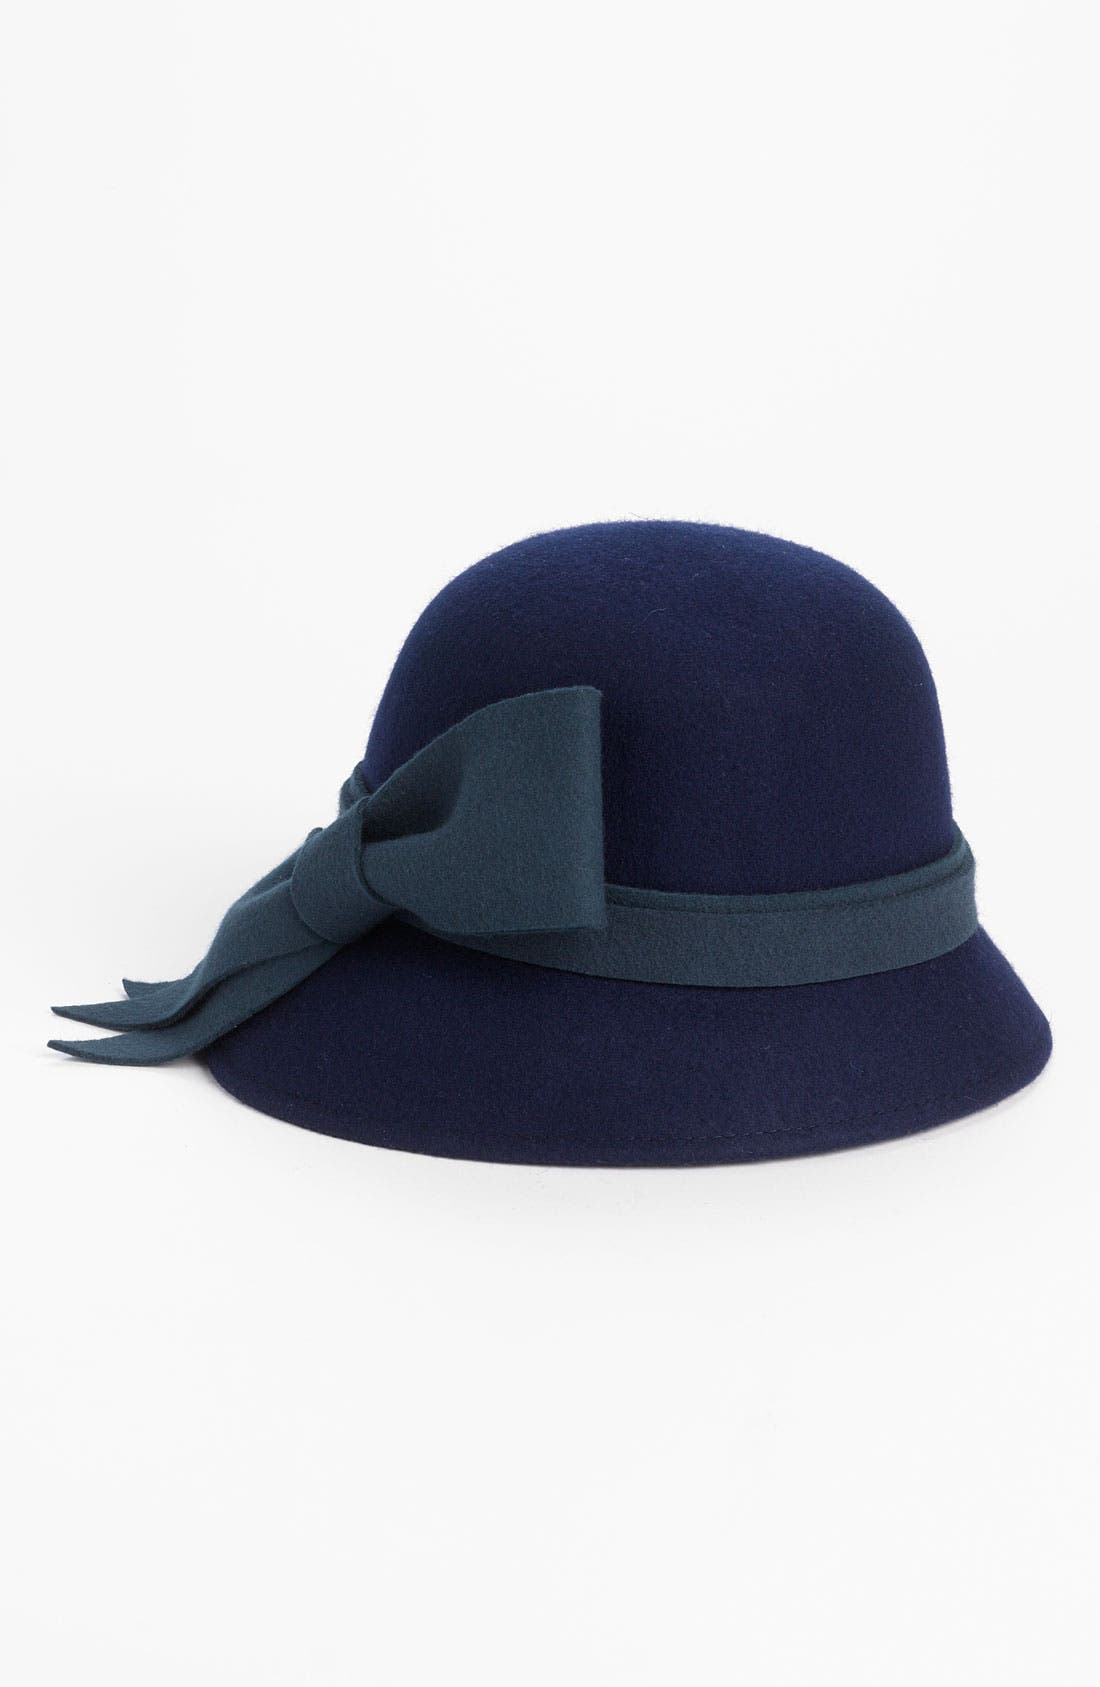 Alternate Image 1 Selected - Collection XIIX Heathered Bow Wool Cloche